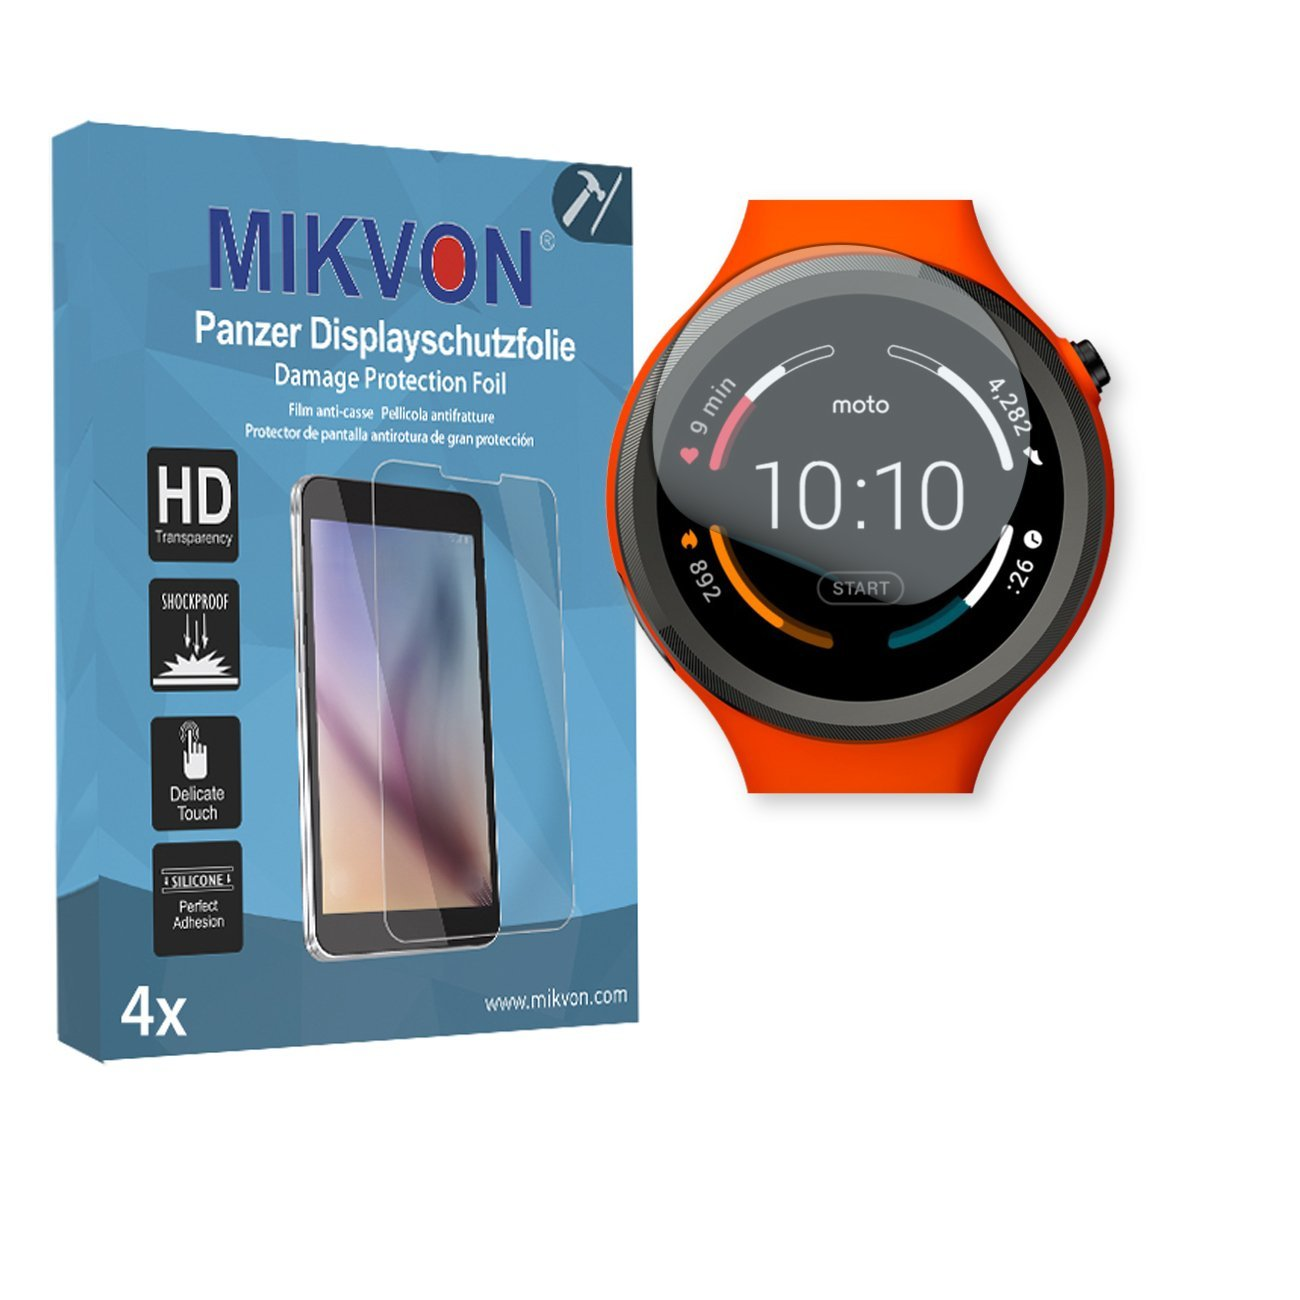 4x Mikvon Armor Screen Protector for Motorola Moto 360 Sport Smartwatch screen fracture protection film - Retail Package with accessories (intentionally smaller than the display due to its curved surf